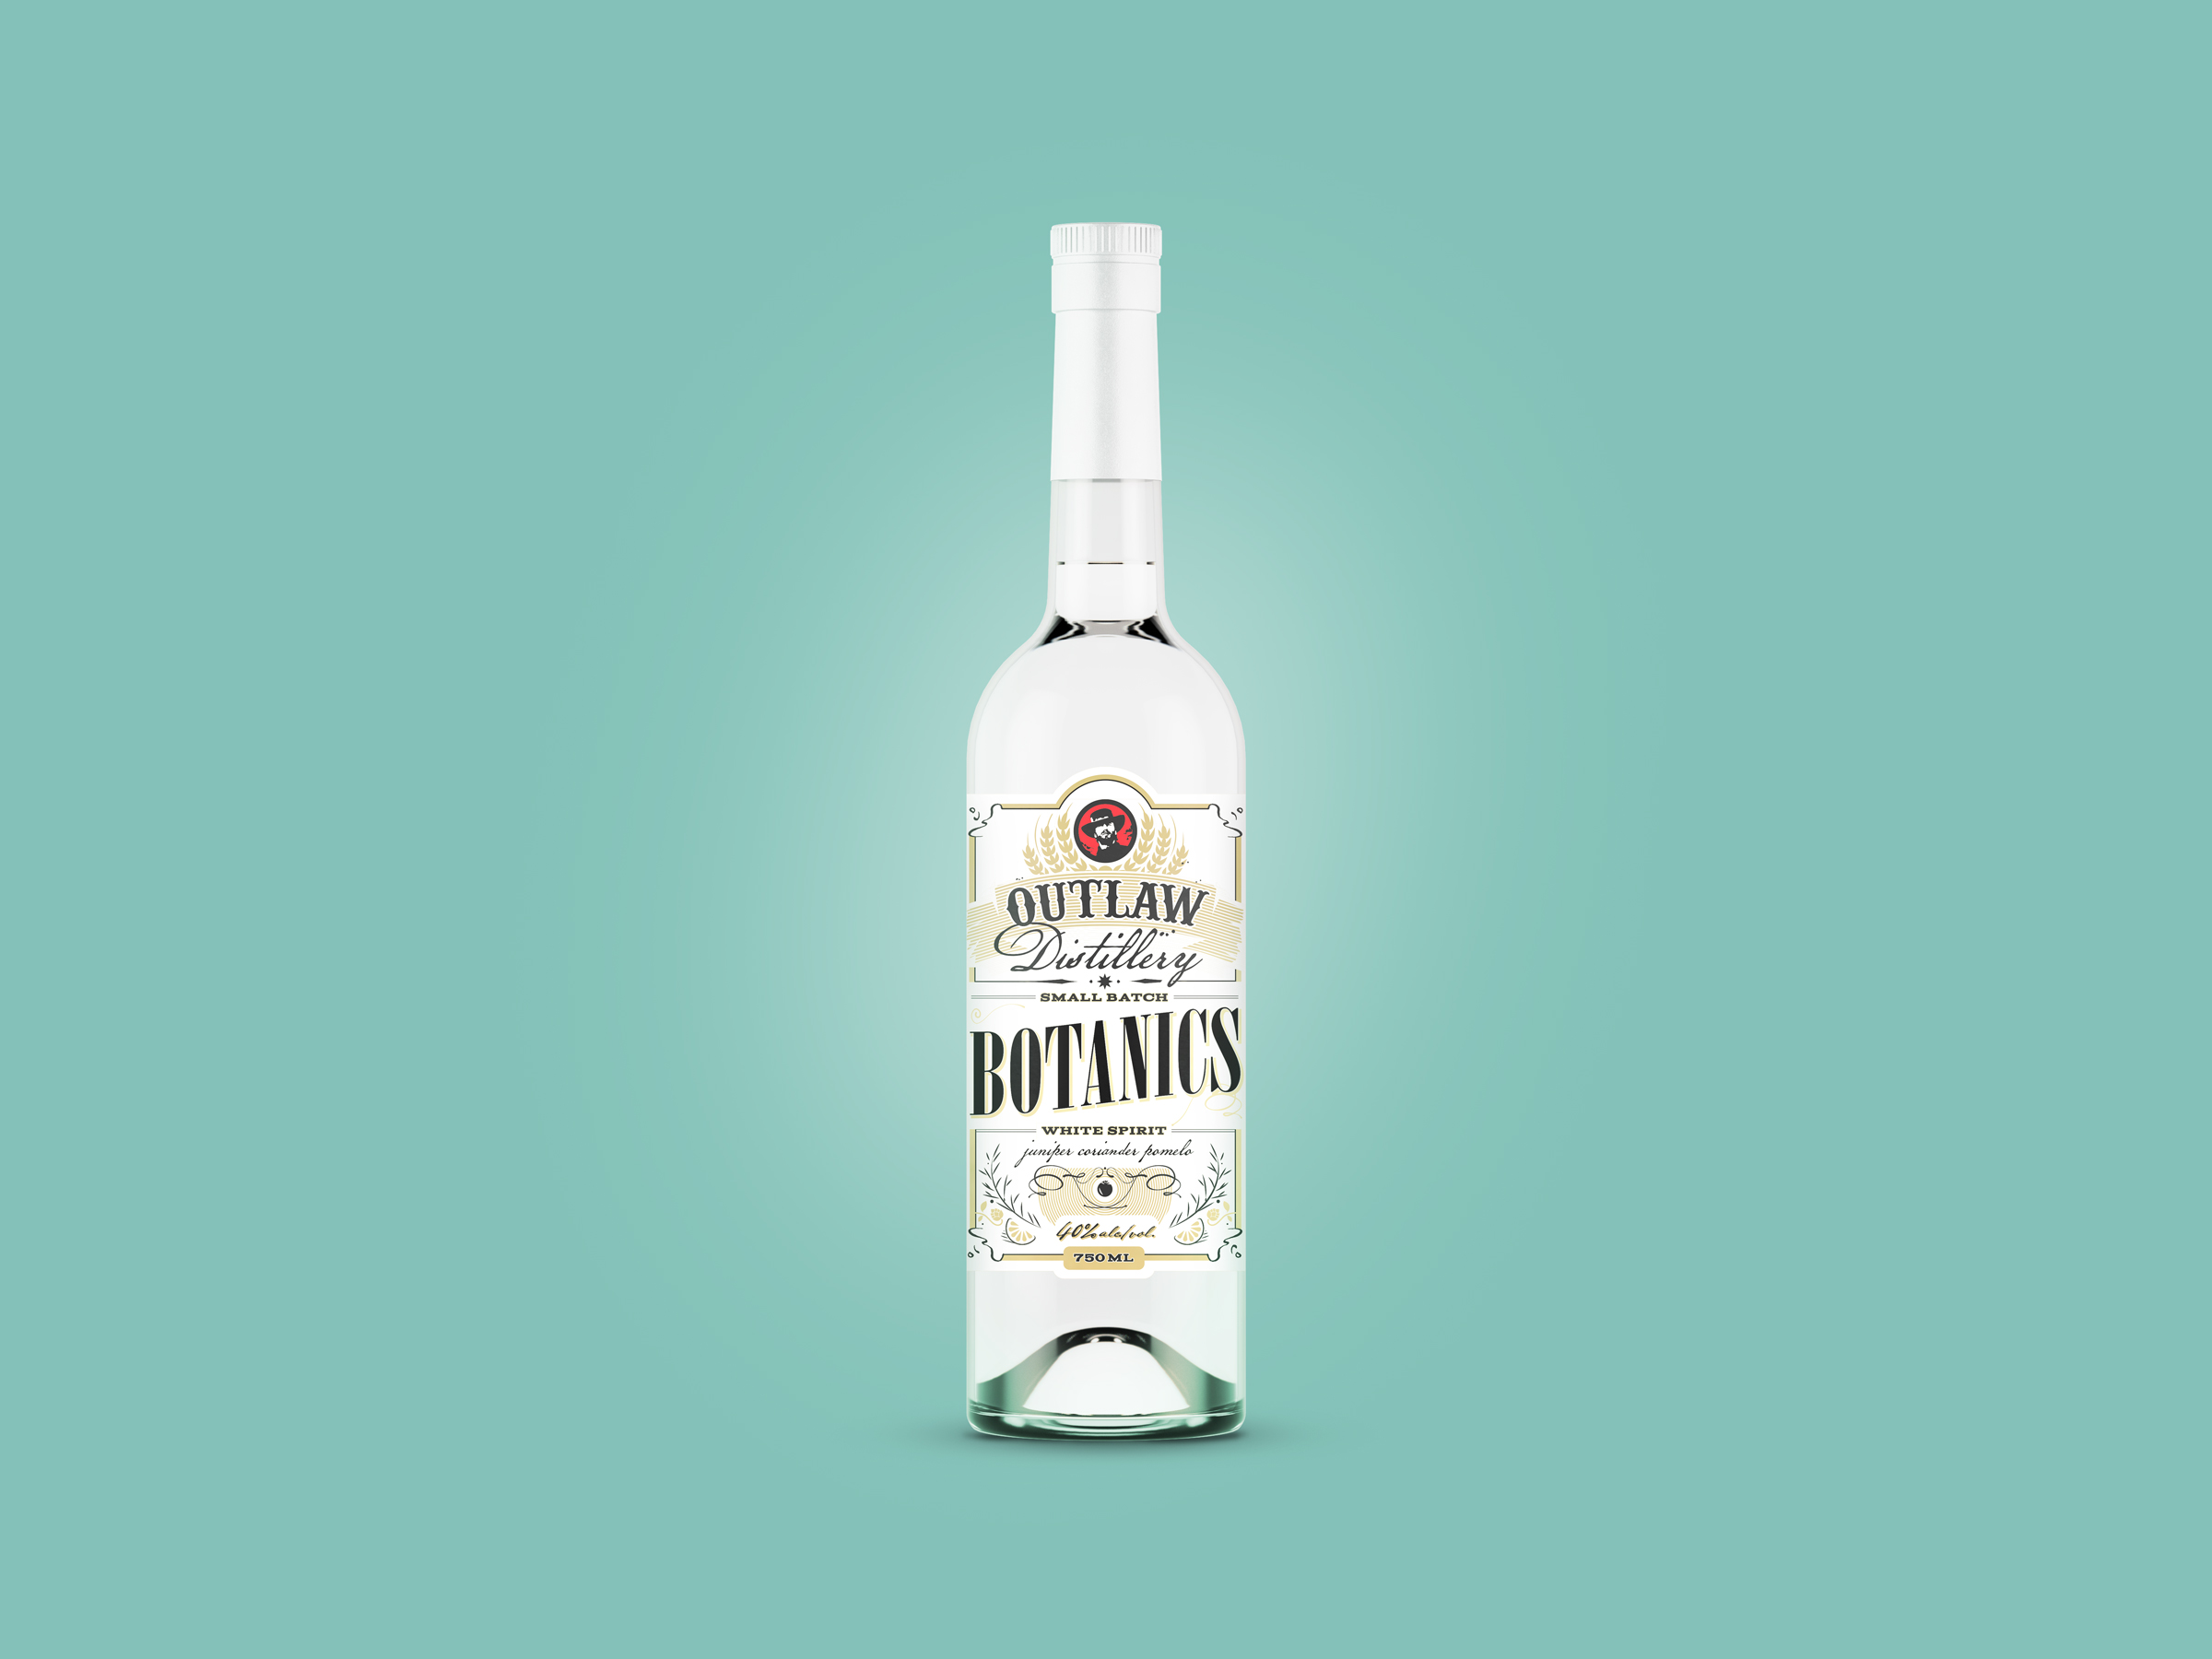 botanics gin label design for outlaw brewing